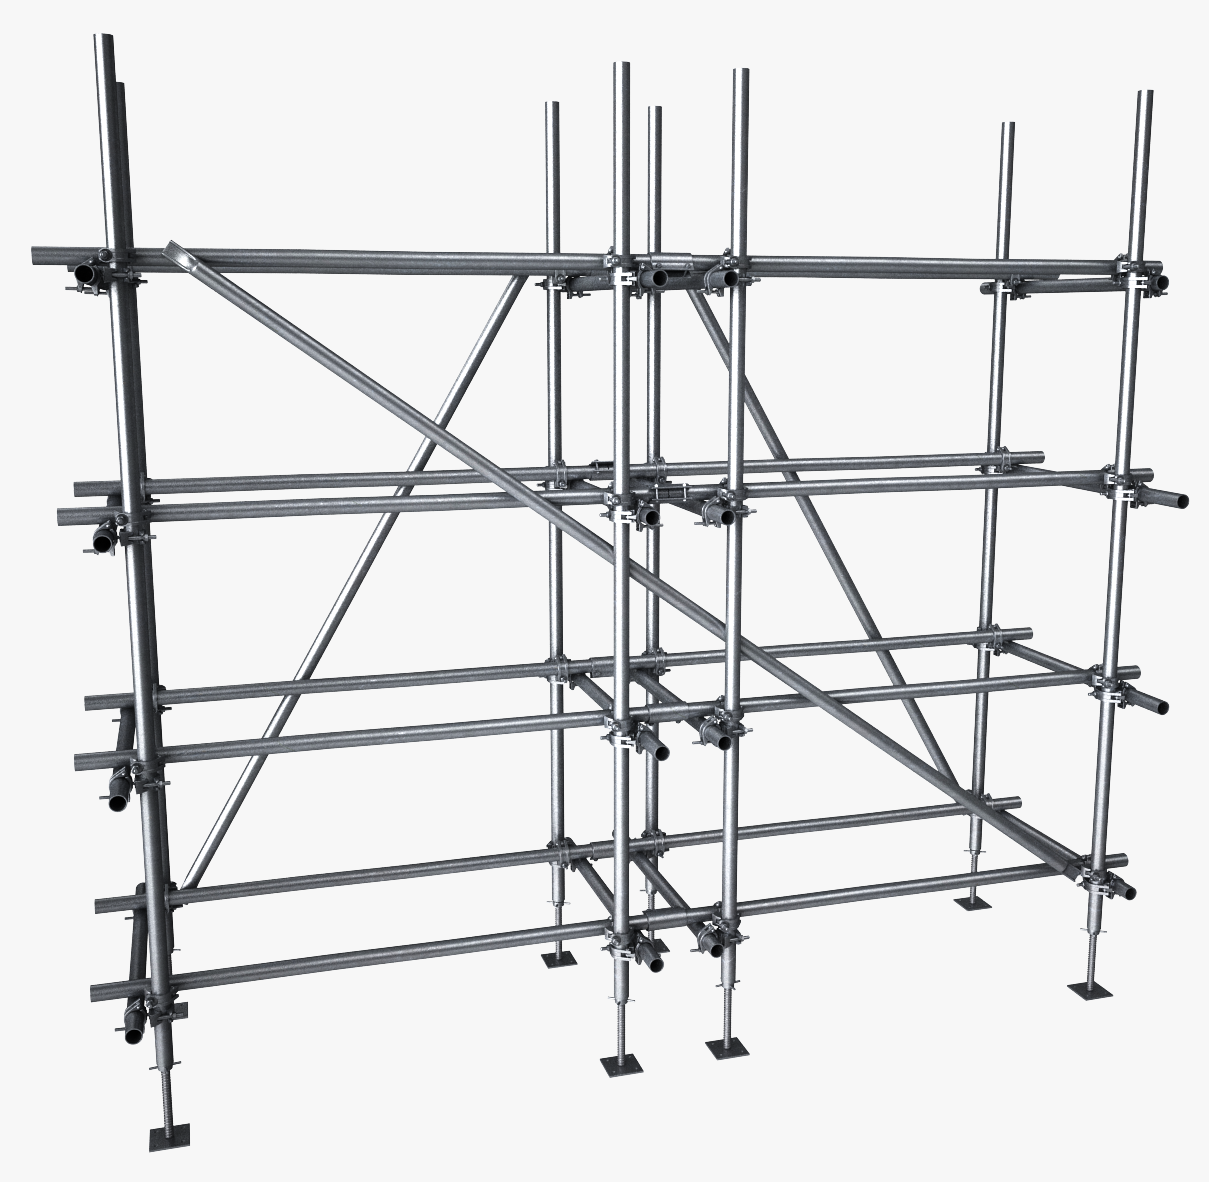 Dice Office Systems scaffolding 3D Models - CGTrader.com